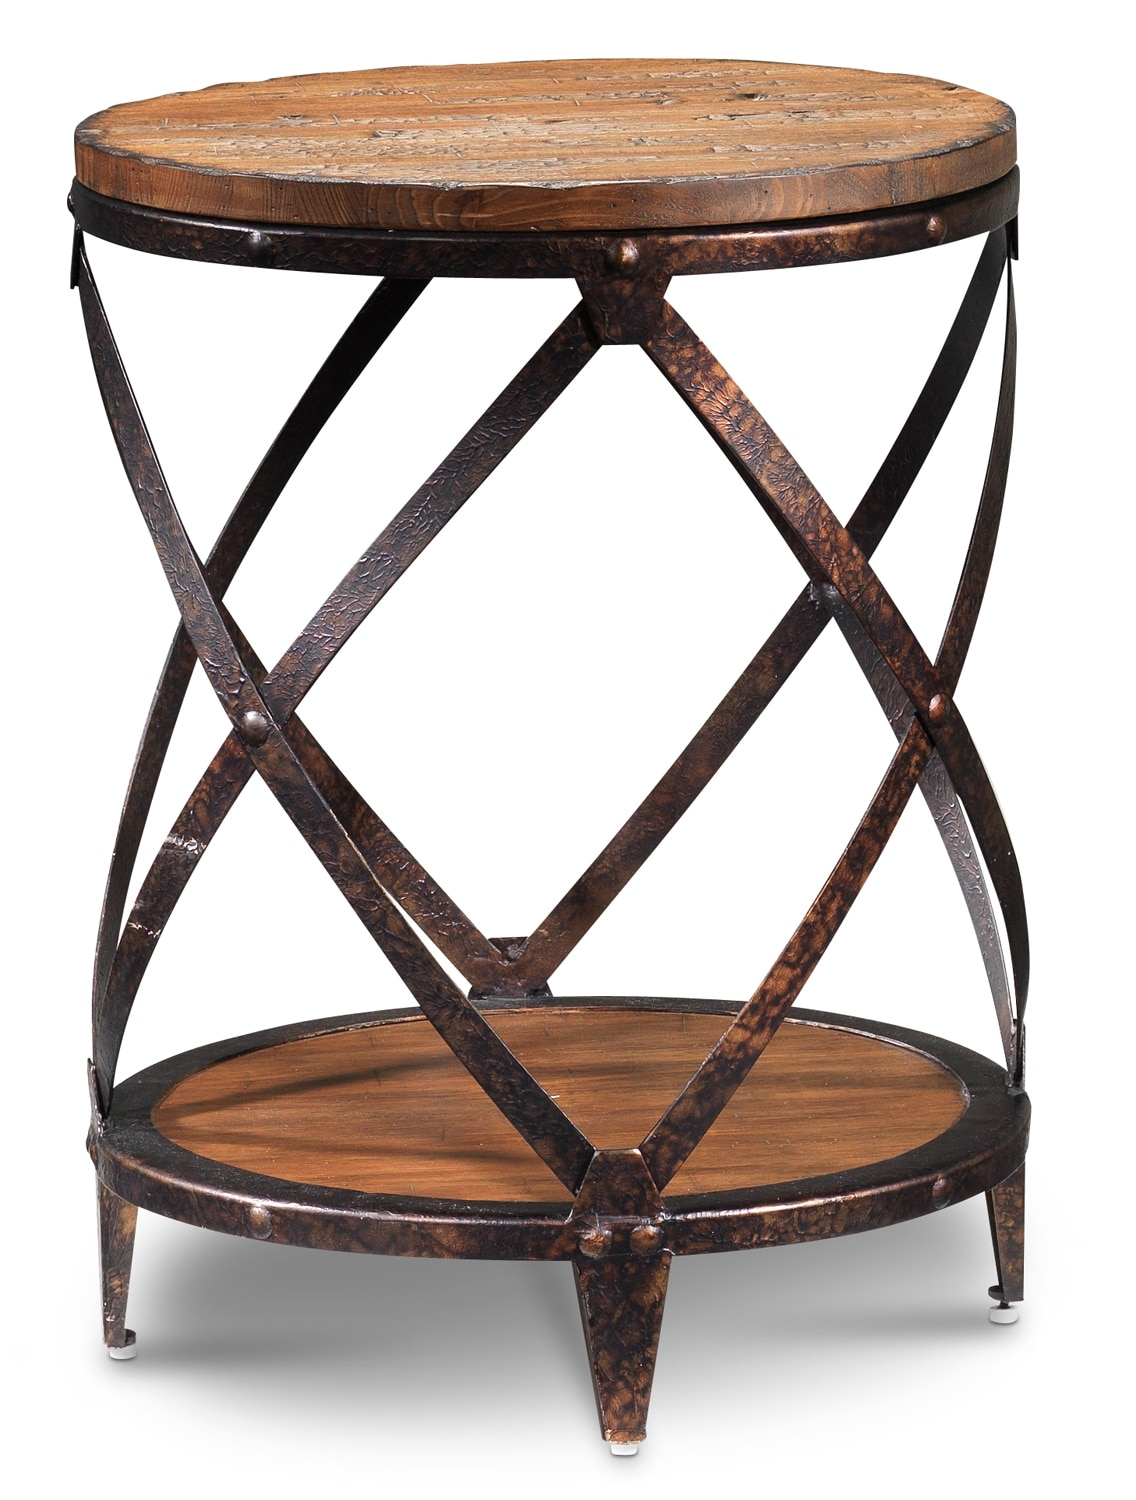 Pinebrook Round End Table - Distressed Natural Pine